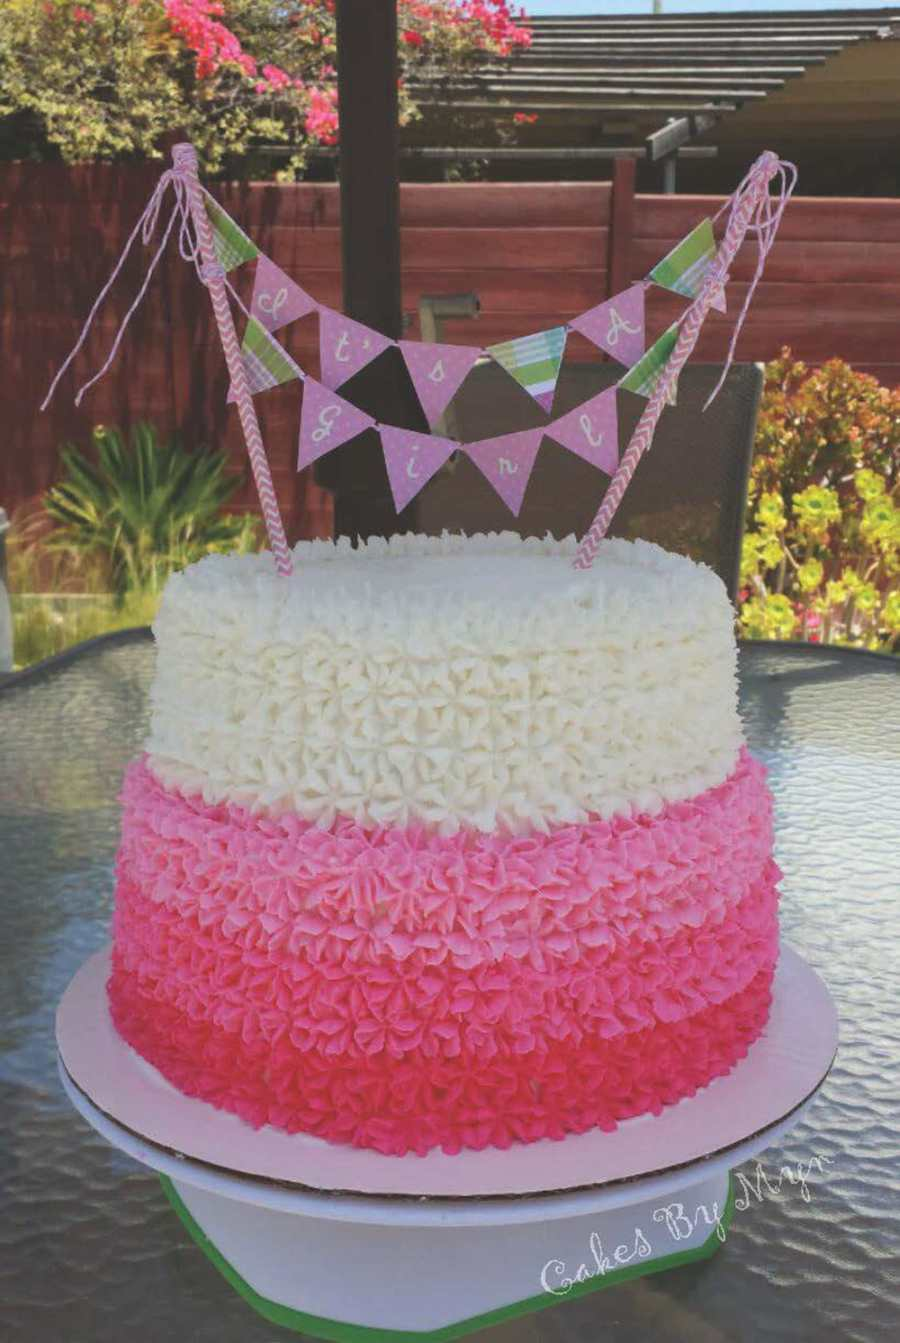 Corner Pink Ombre Baby Shower Cake On Cake Central Pink Ombre Baby Shower Cake Girl Baby Shower Cakes Girl Baby Shower Cakes Flowers baby shower Girl Baby Shower Cakes